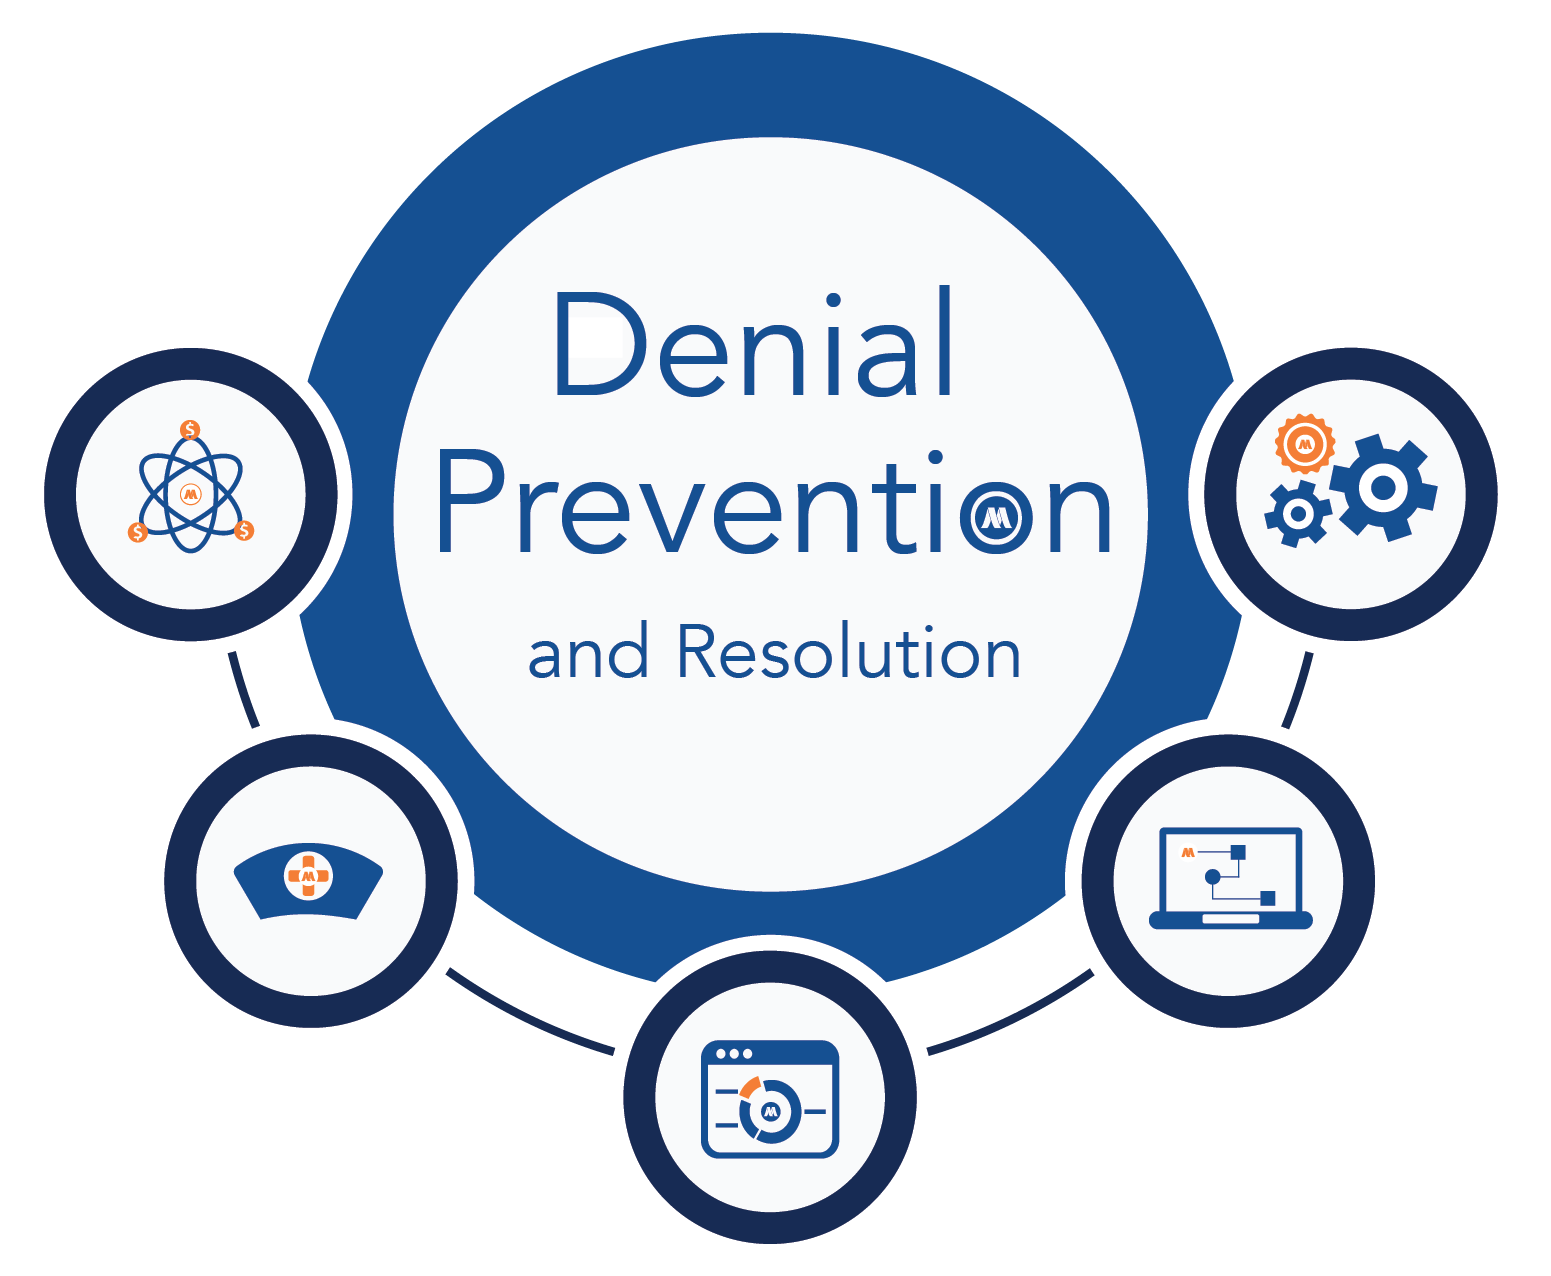 Denial Prevention and Resolution